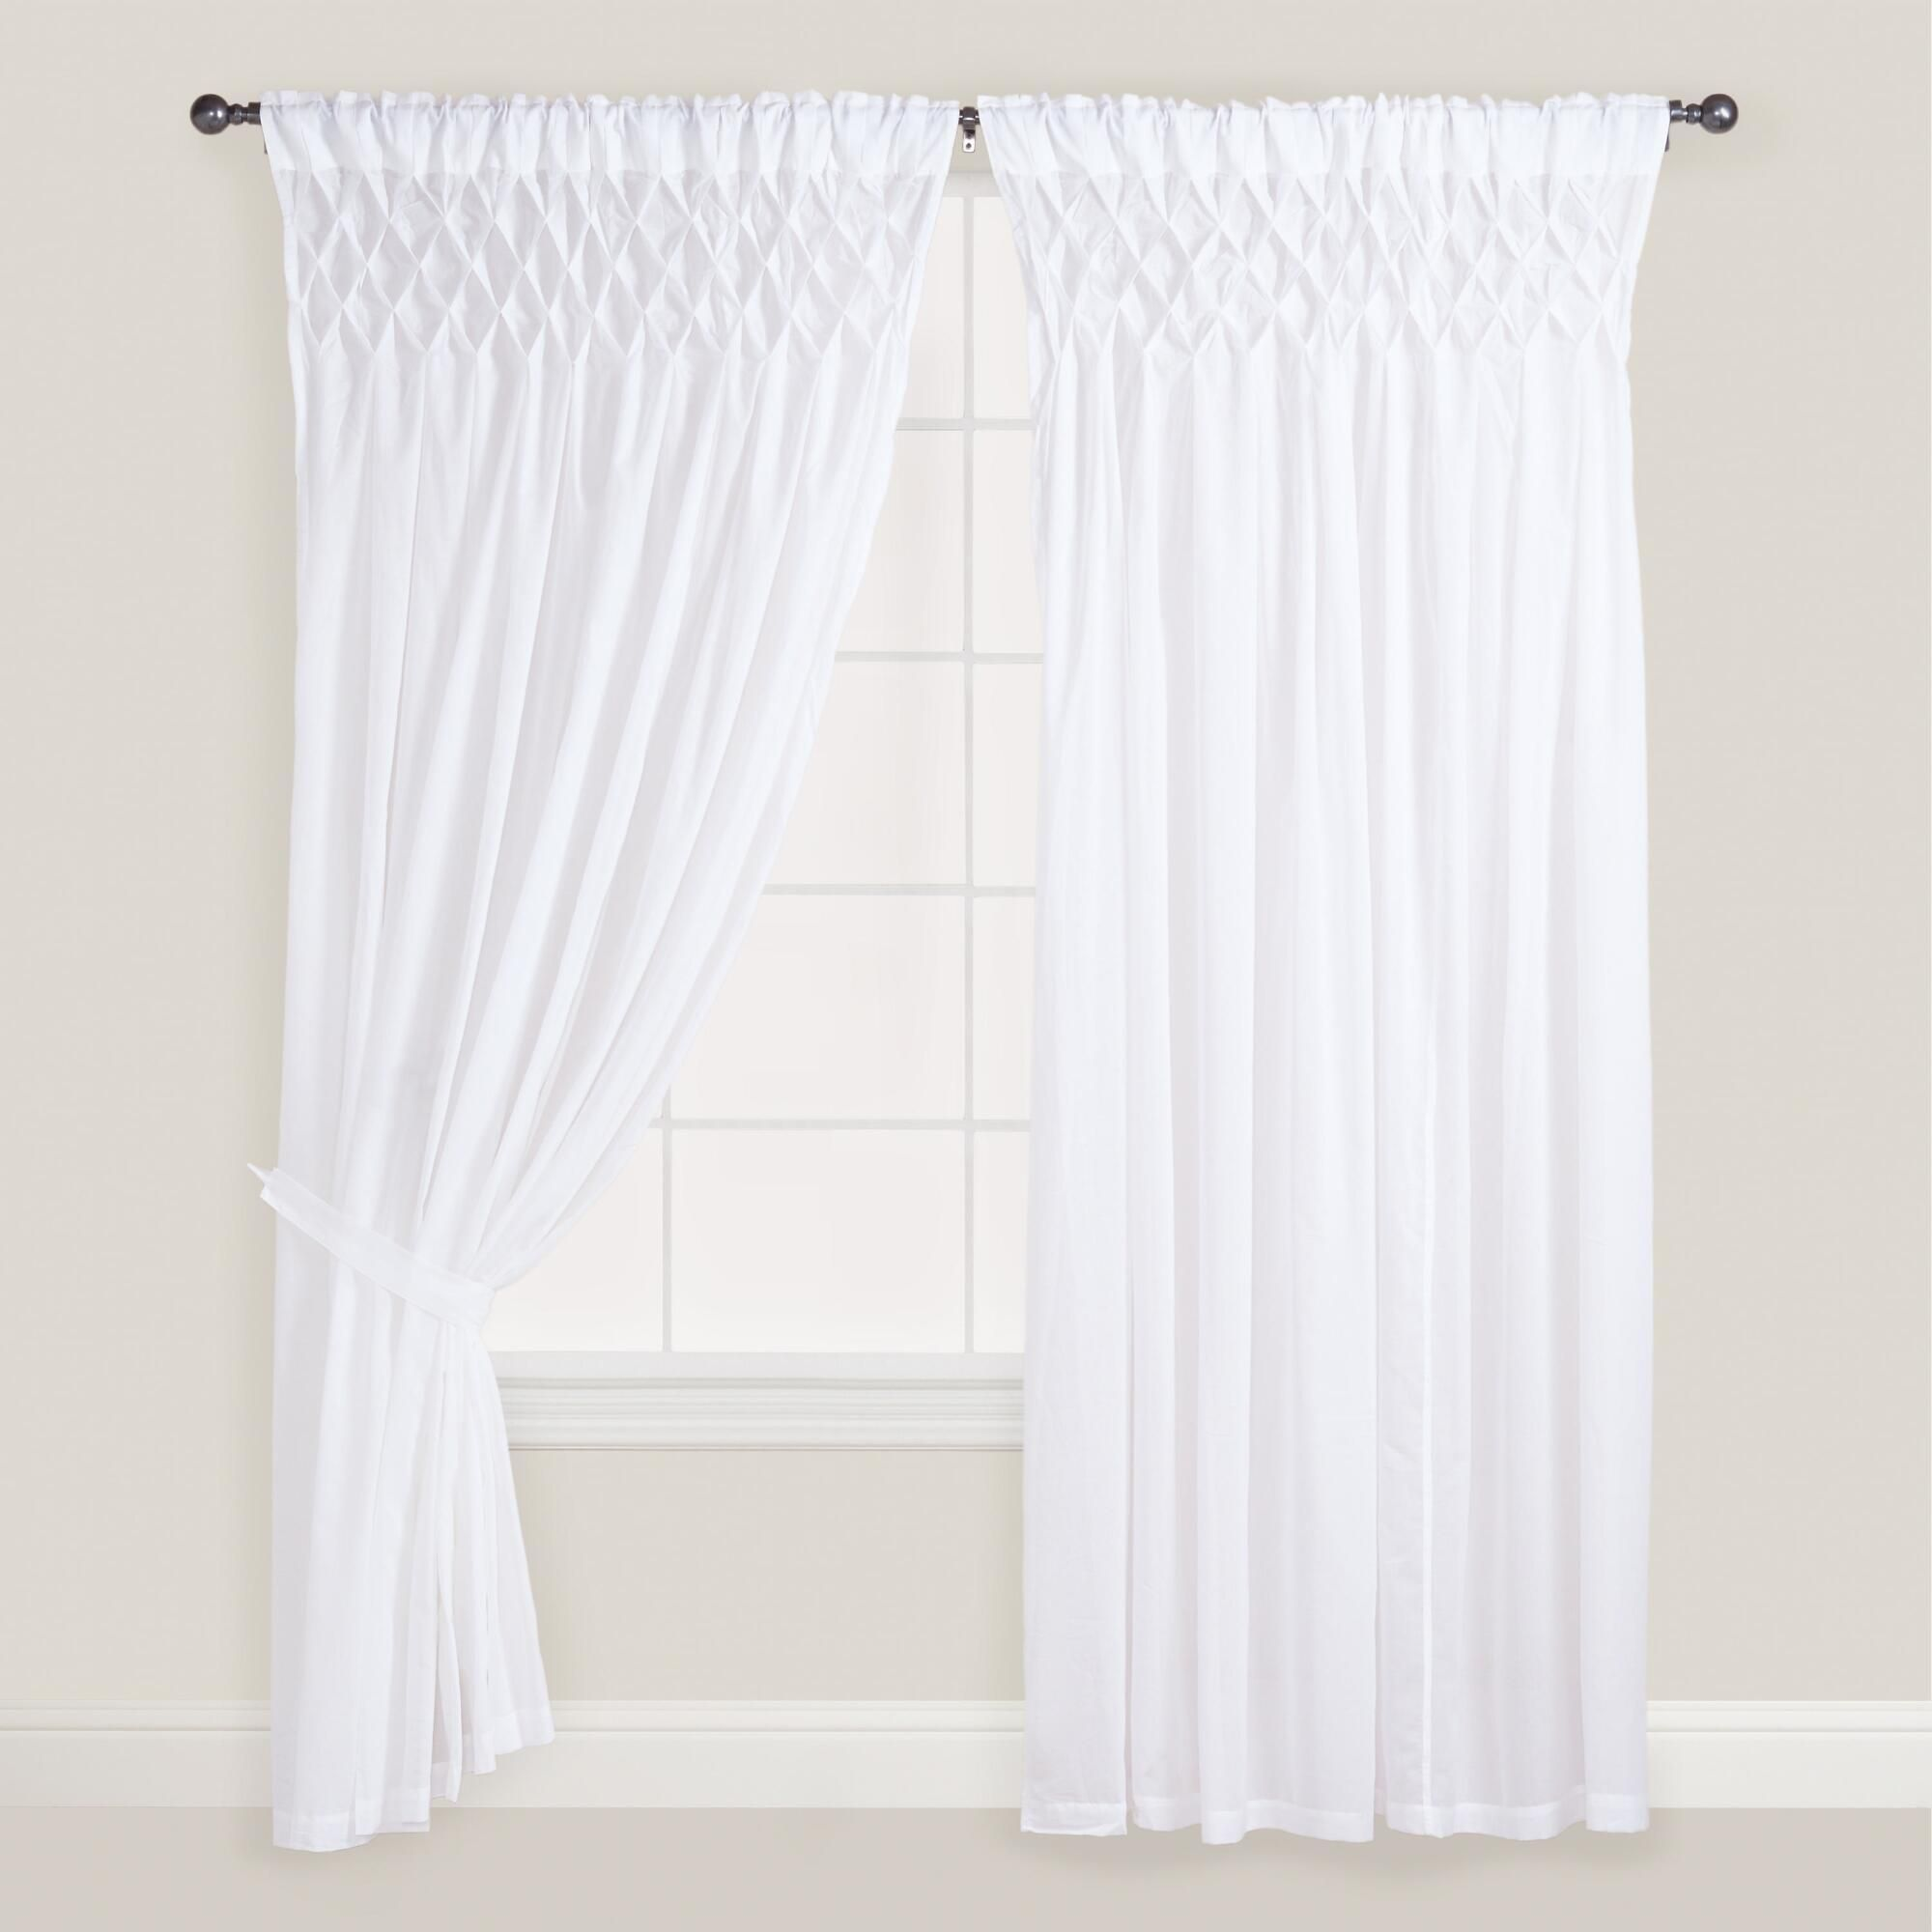 at trends smocked appealing curtains white provincial guest inches linen ocean style home curtain french pom of astonishing and panel organic pair image tfile